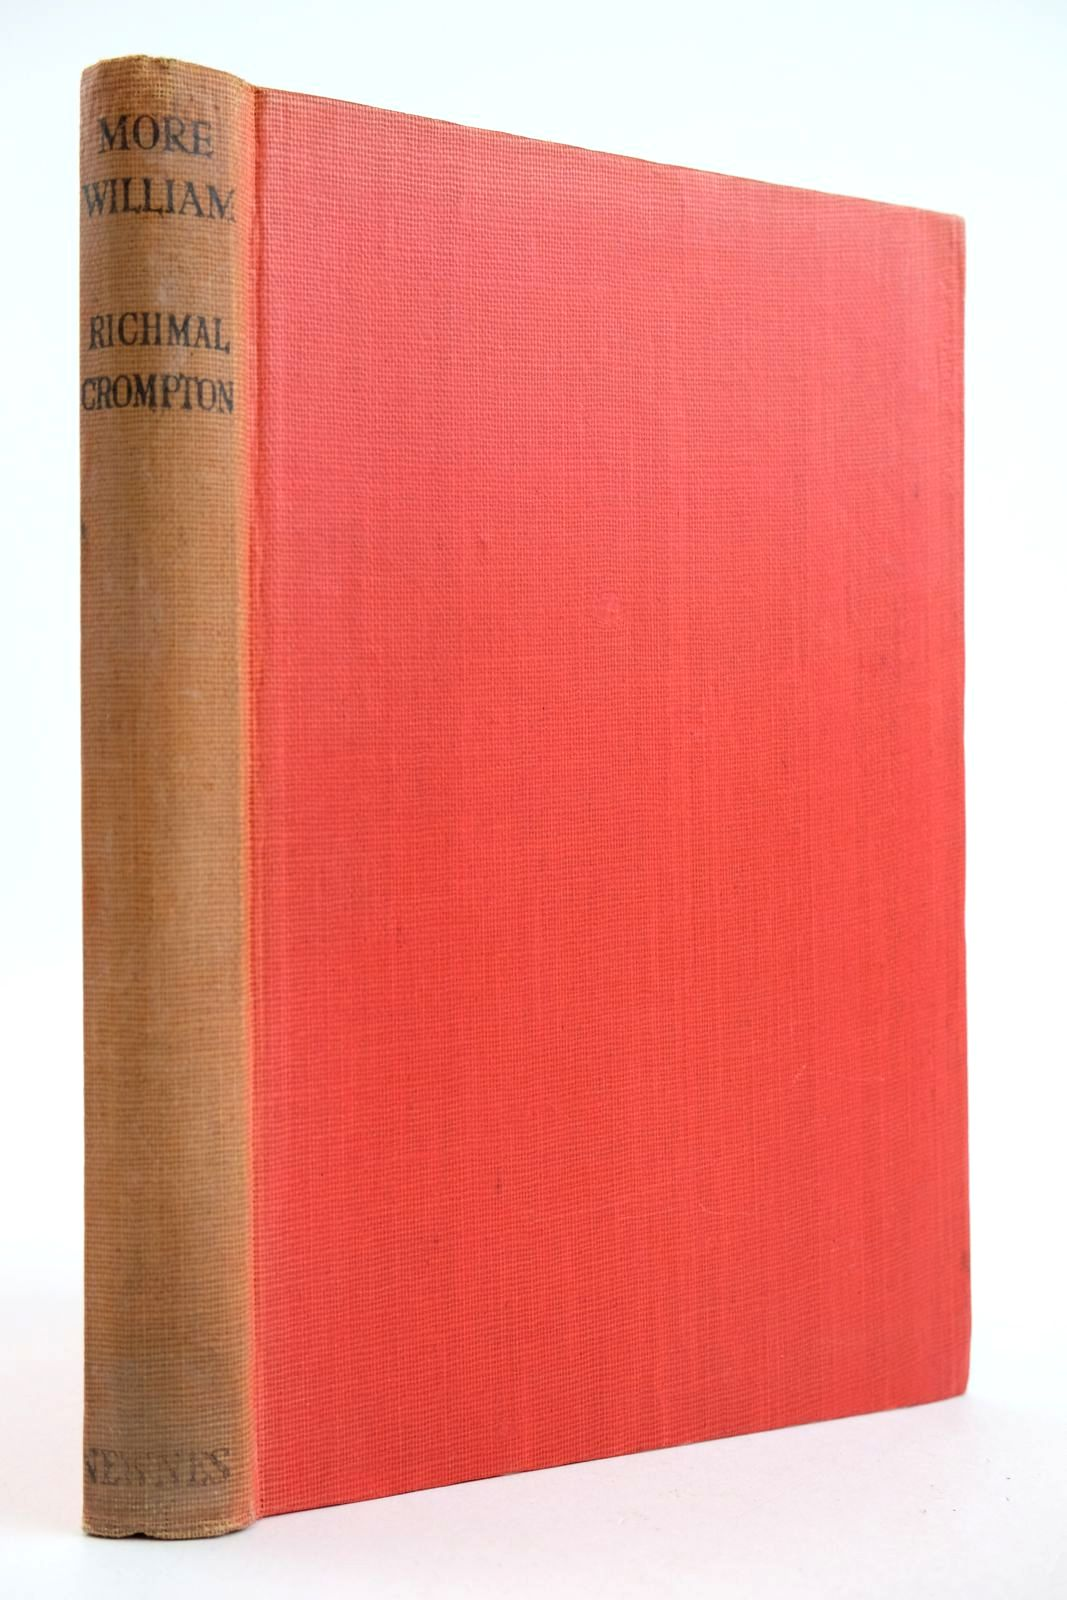 Photo of MORE WILLIAM written by Crompton, Richmal illustrated by Henry, Thomas published by George Newnes Limited (STOCK CODE: 2132746)  for sale by Stella & Rose's Books